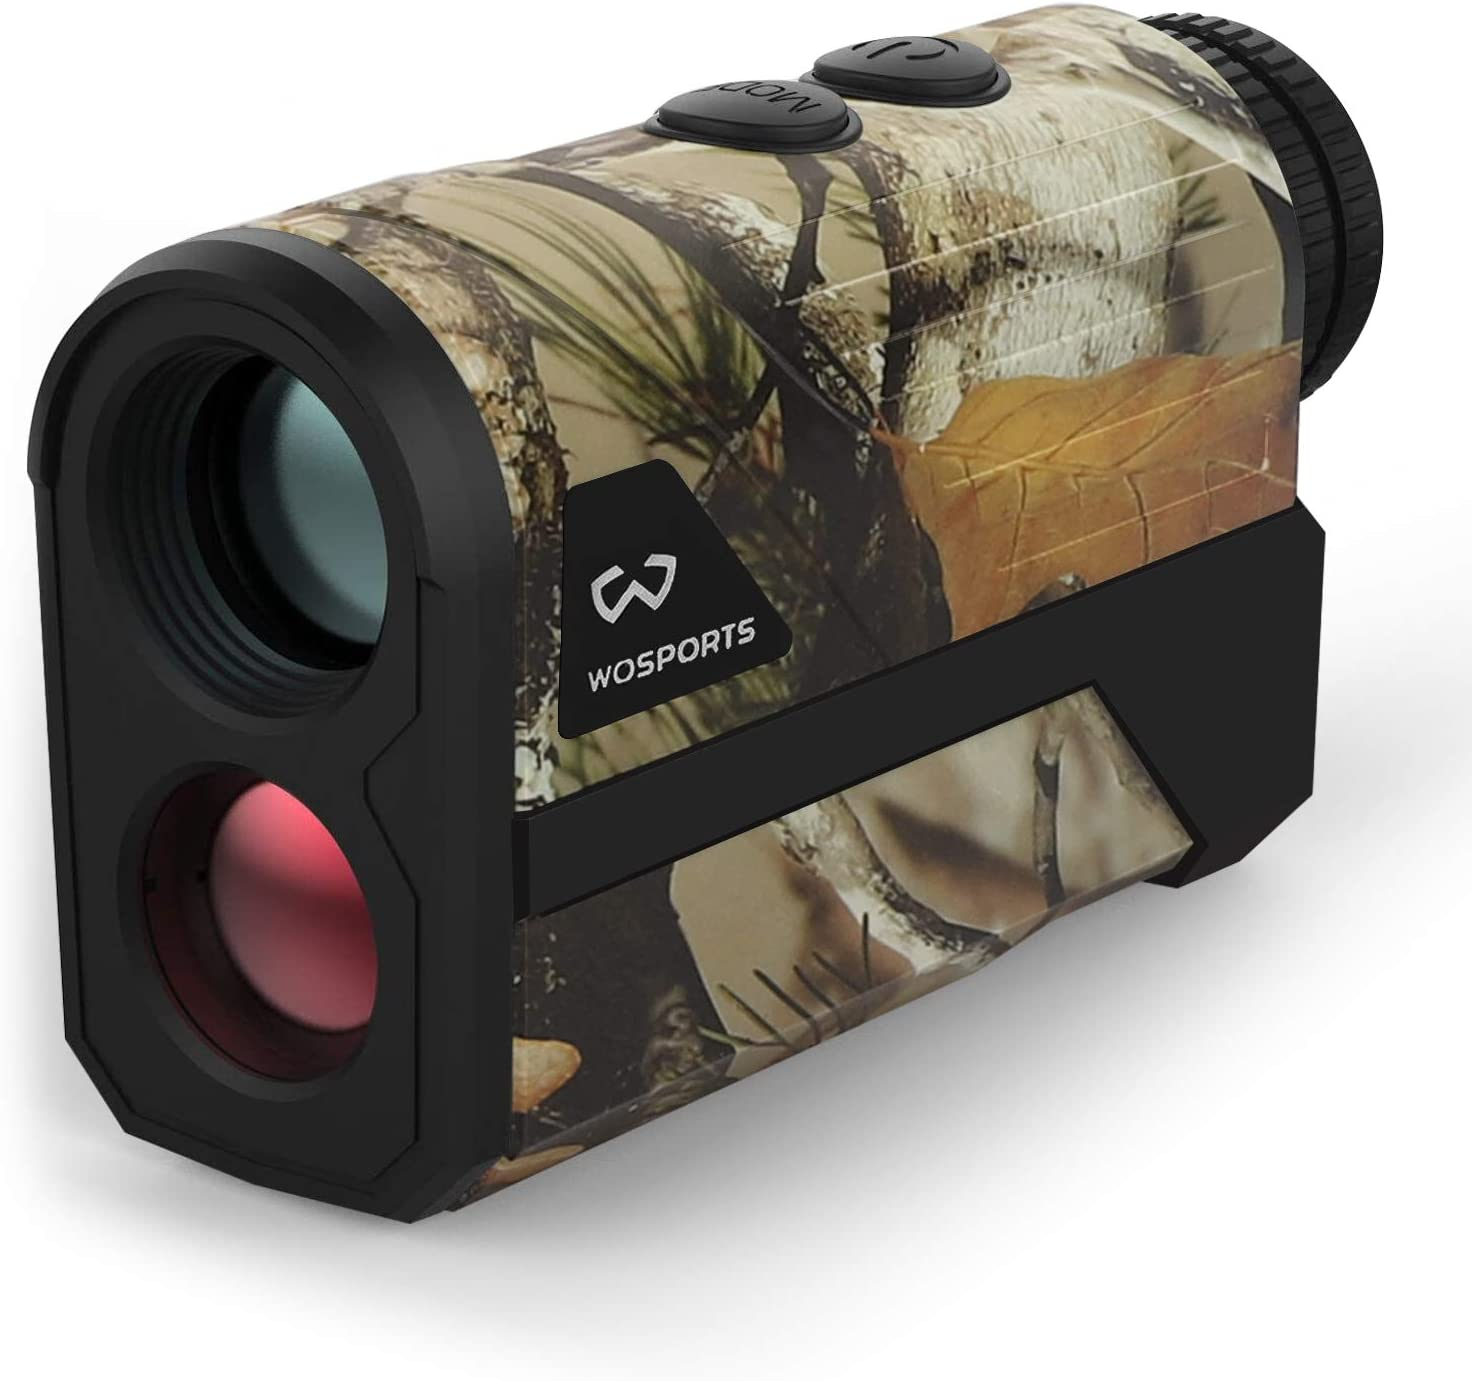 WOSPORTS 1000 Yards Hunting Rangefinder,Archery Rangefinder – Laser Range Finder for Hunting Golf with Speed, Scan and Normal Measurements